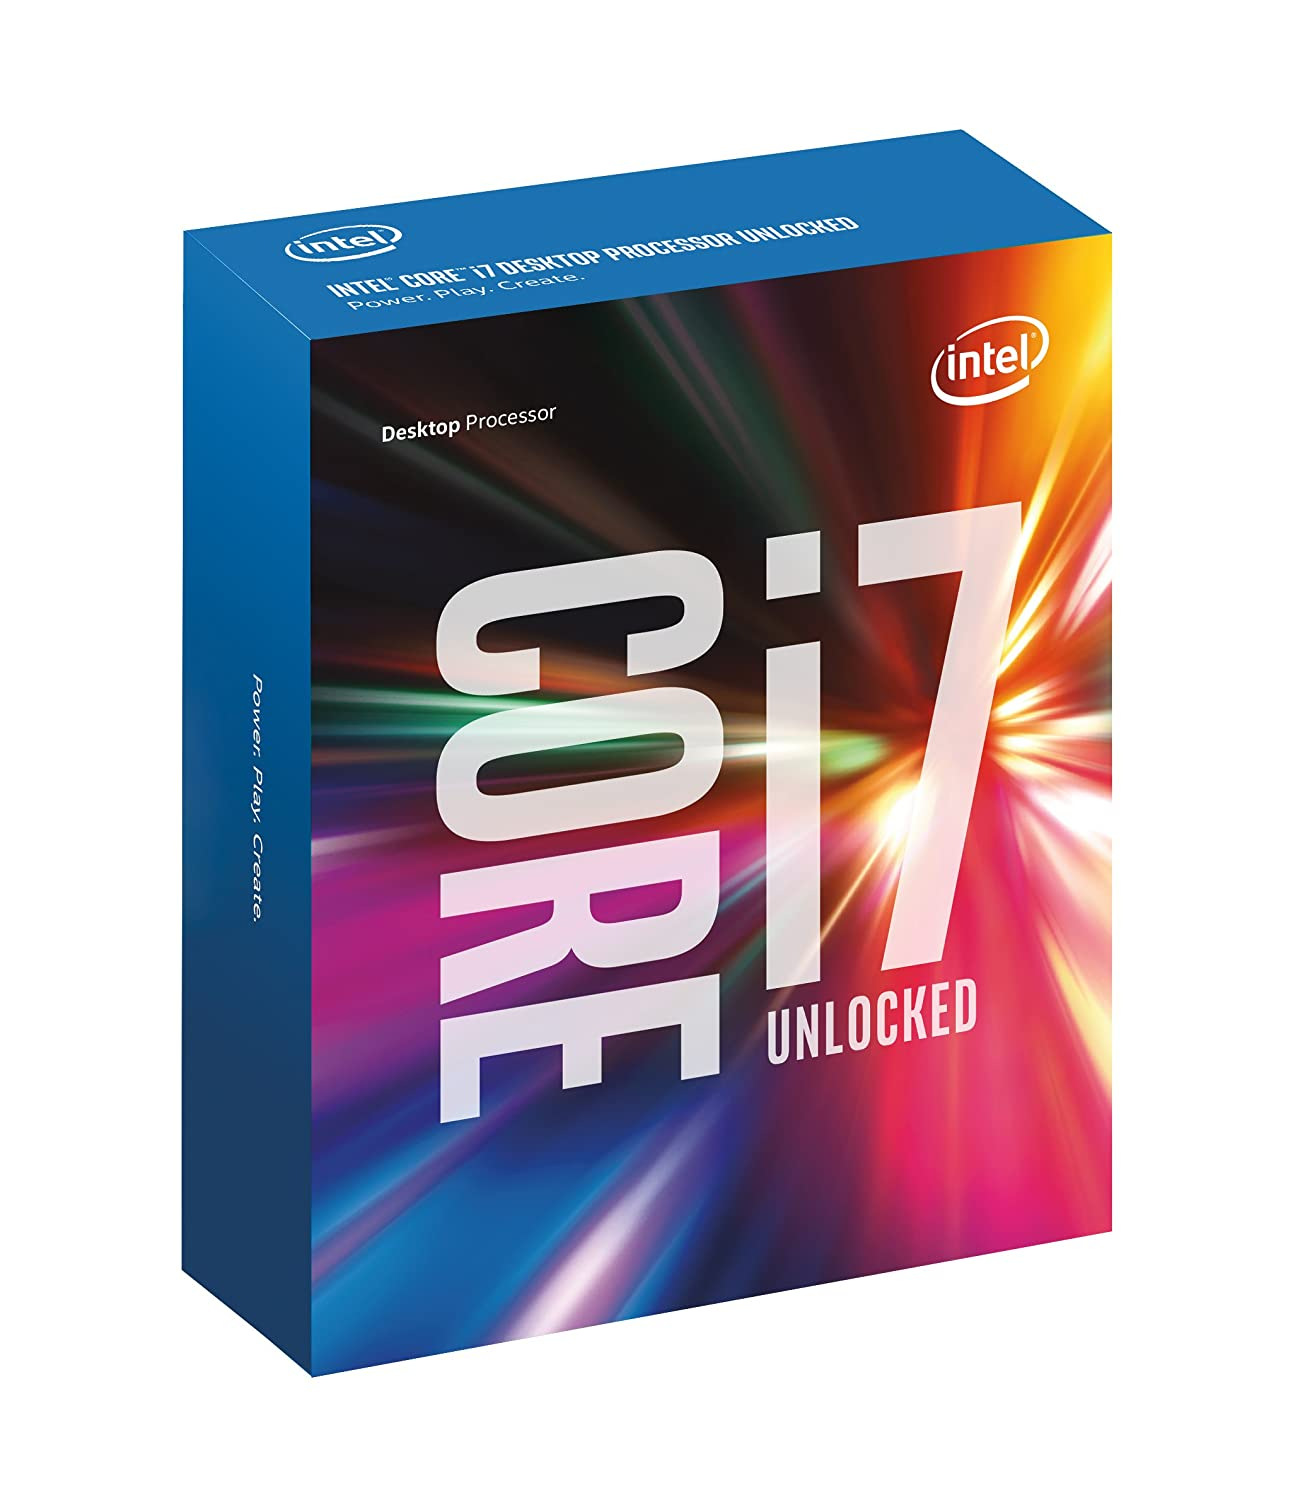 Intel Core I7-6700K 4.00 GHz